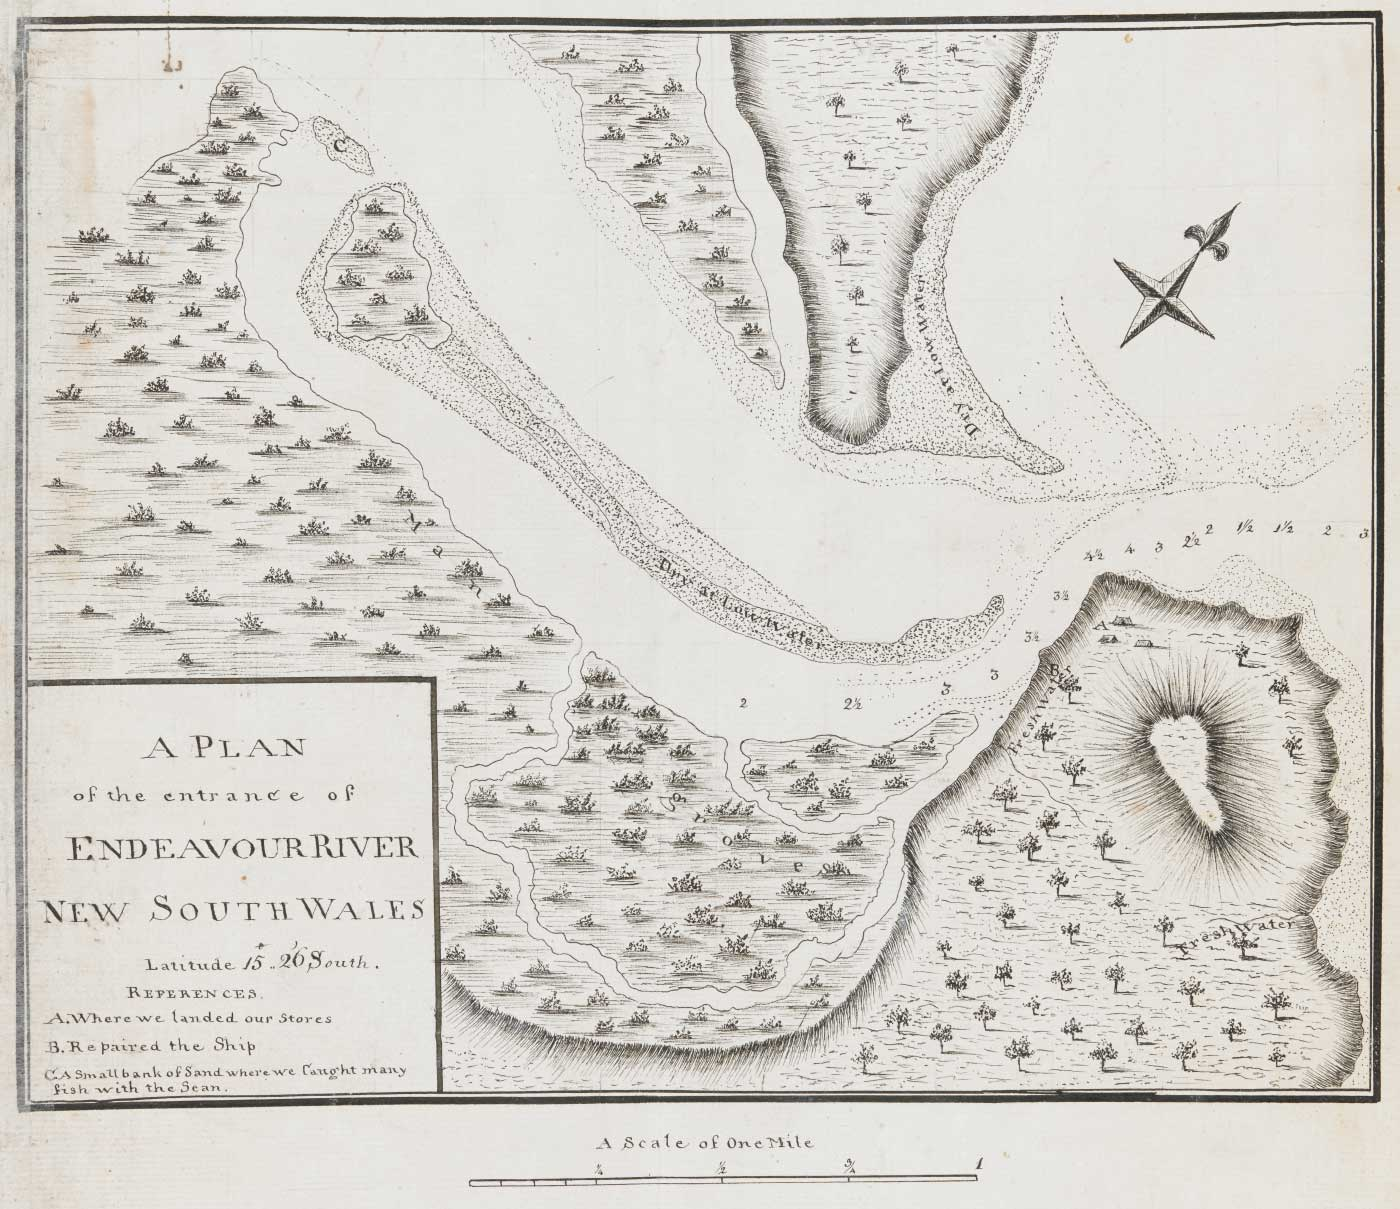 A sketch map showing the entrance of the 'Endeavour River, New South Wales'.